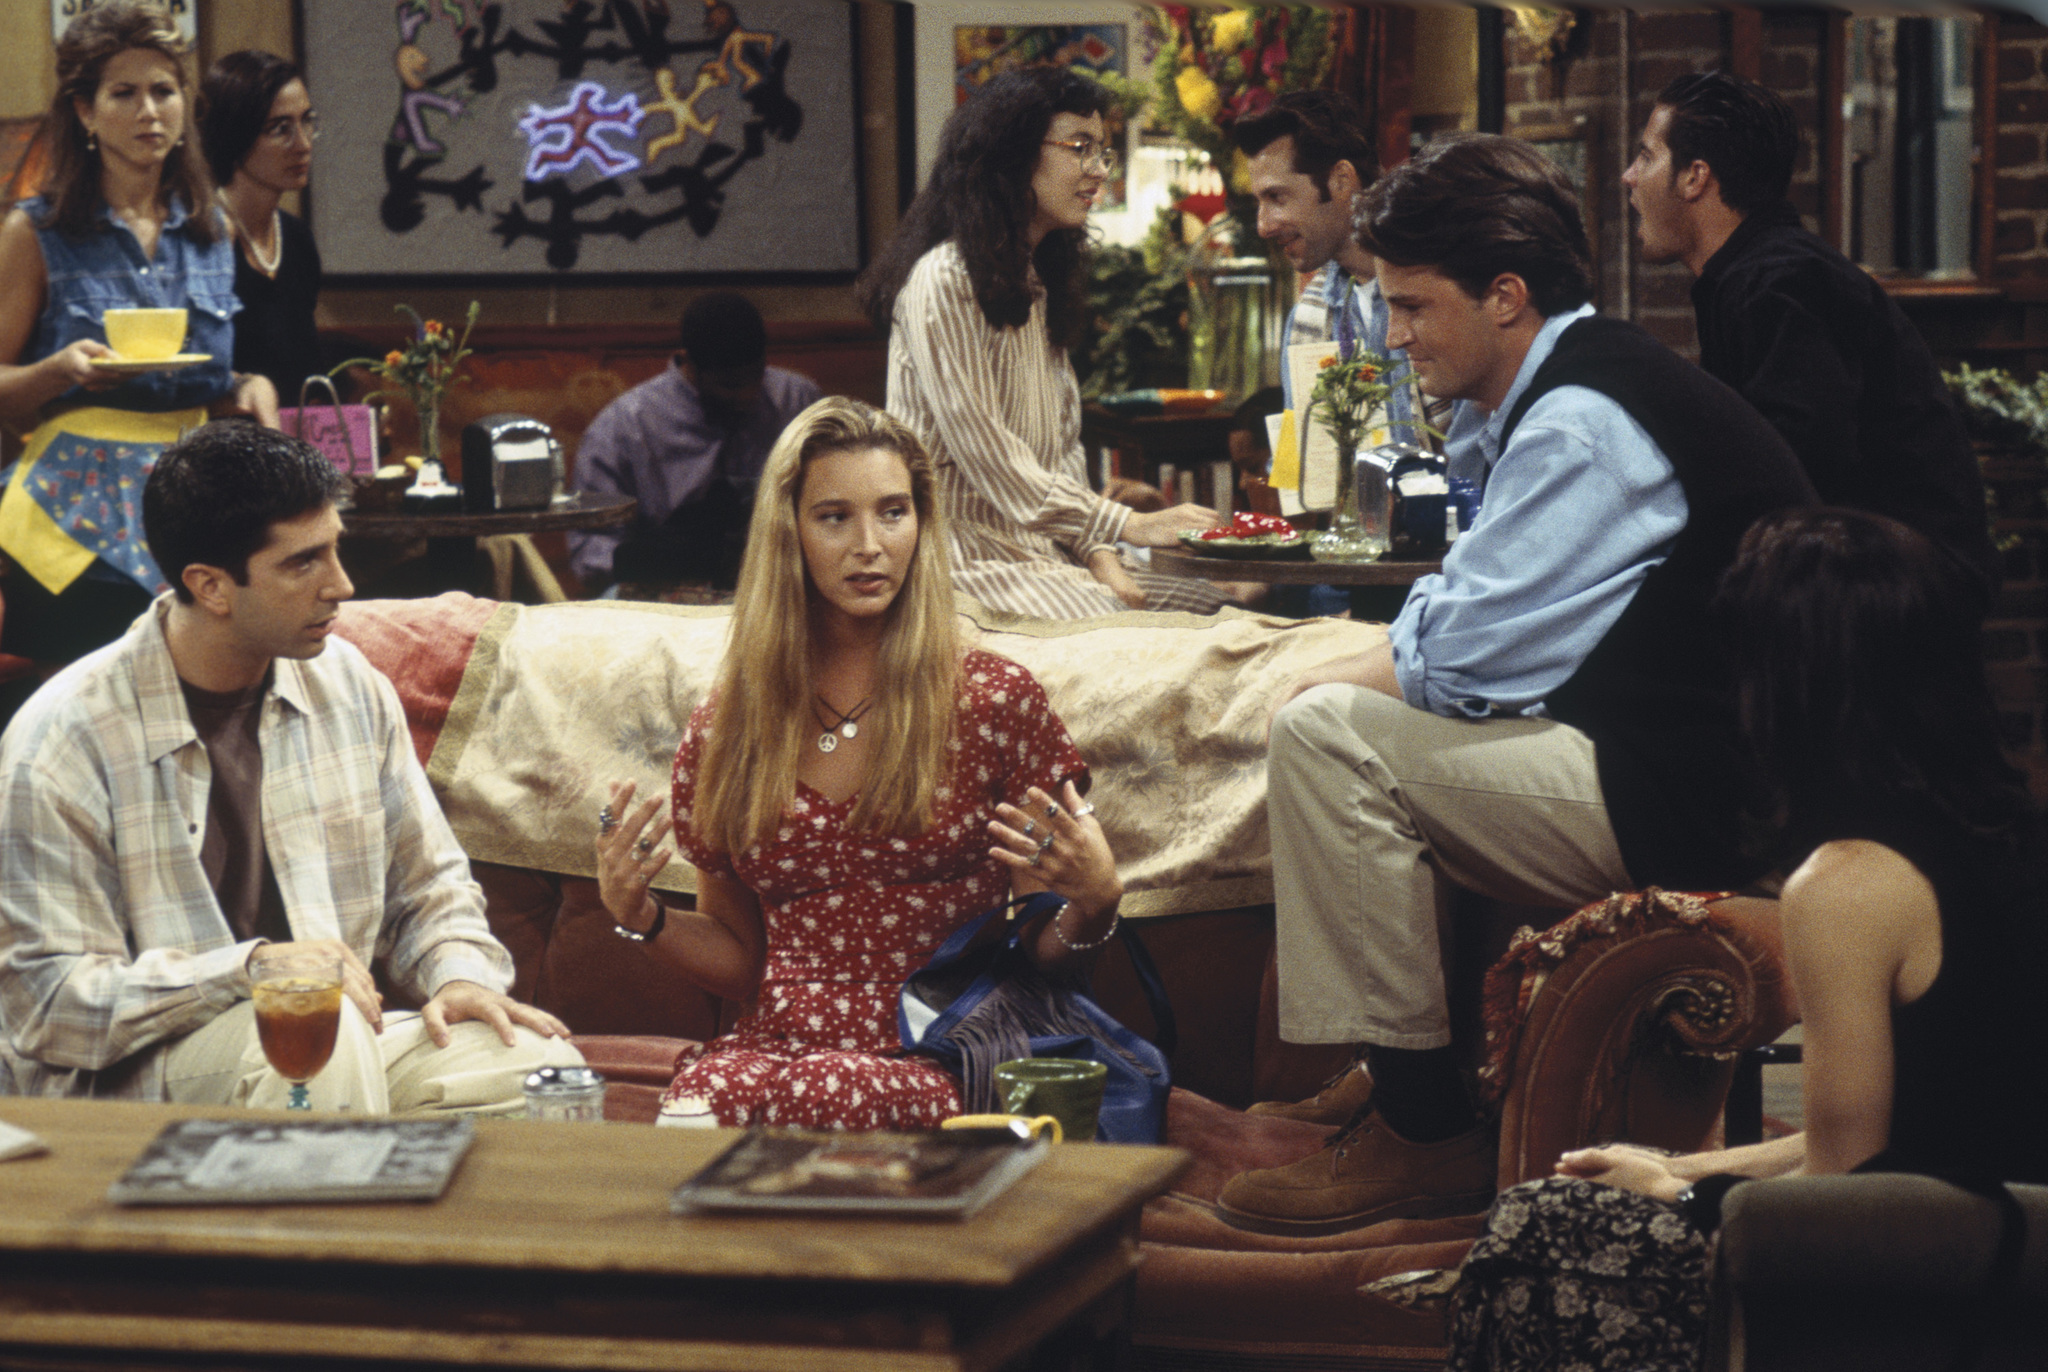 Friends: The One with the Thumb | Season 1 | Episode 3